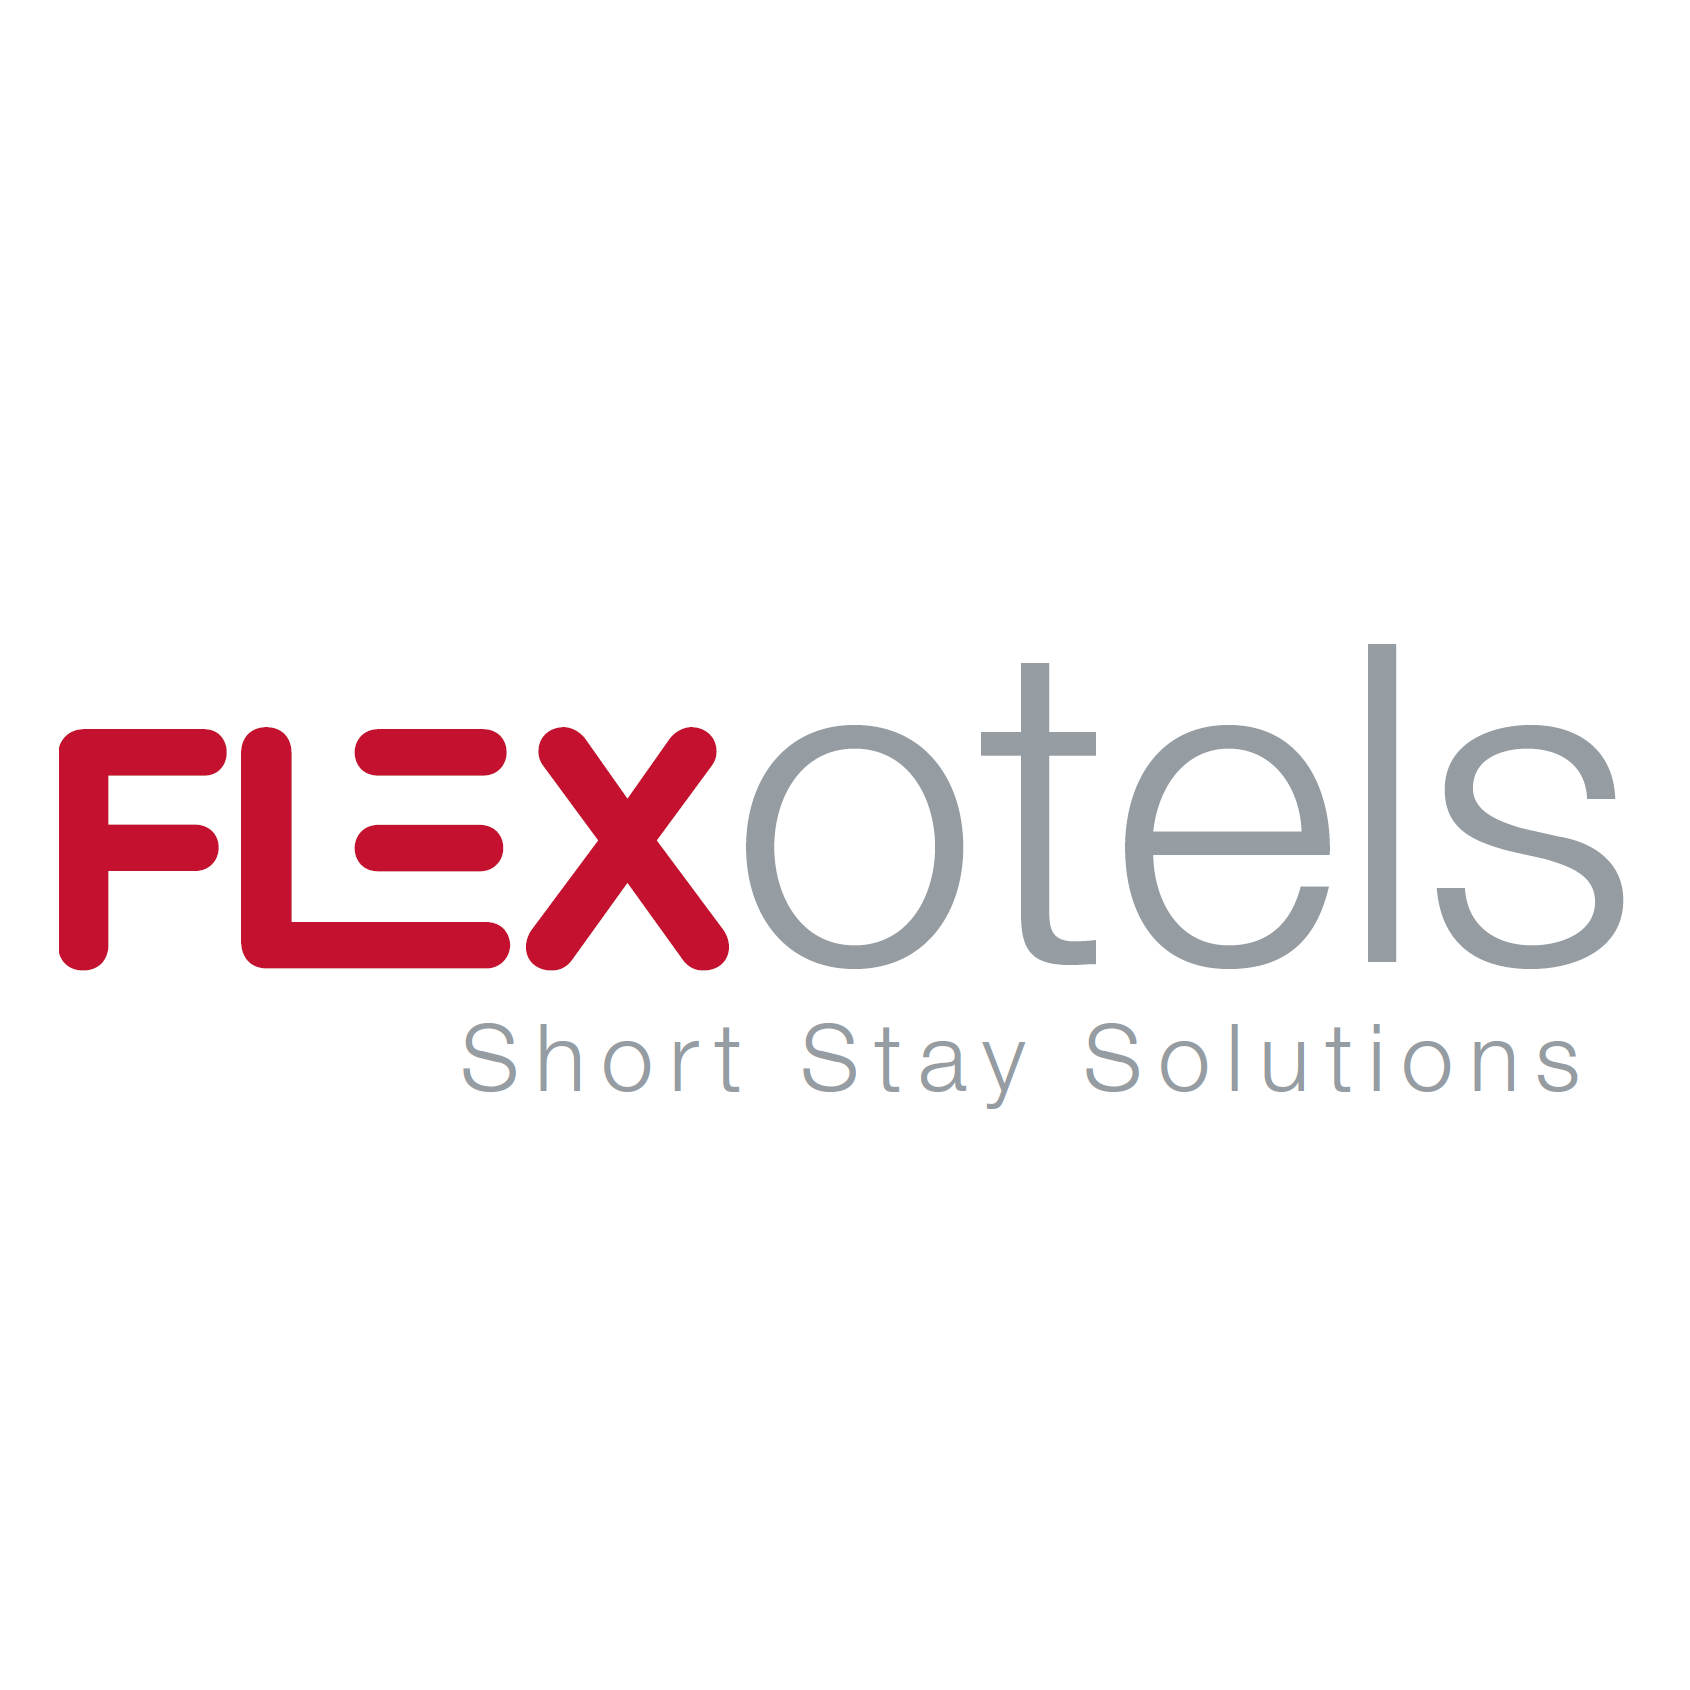 Flexotels